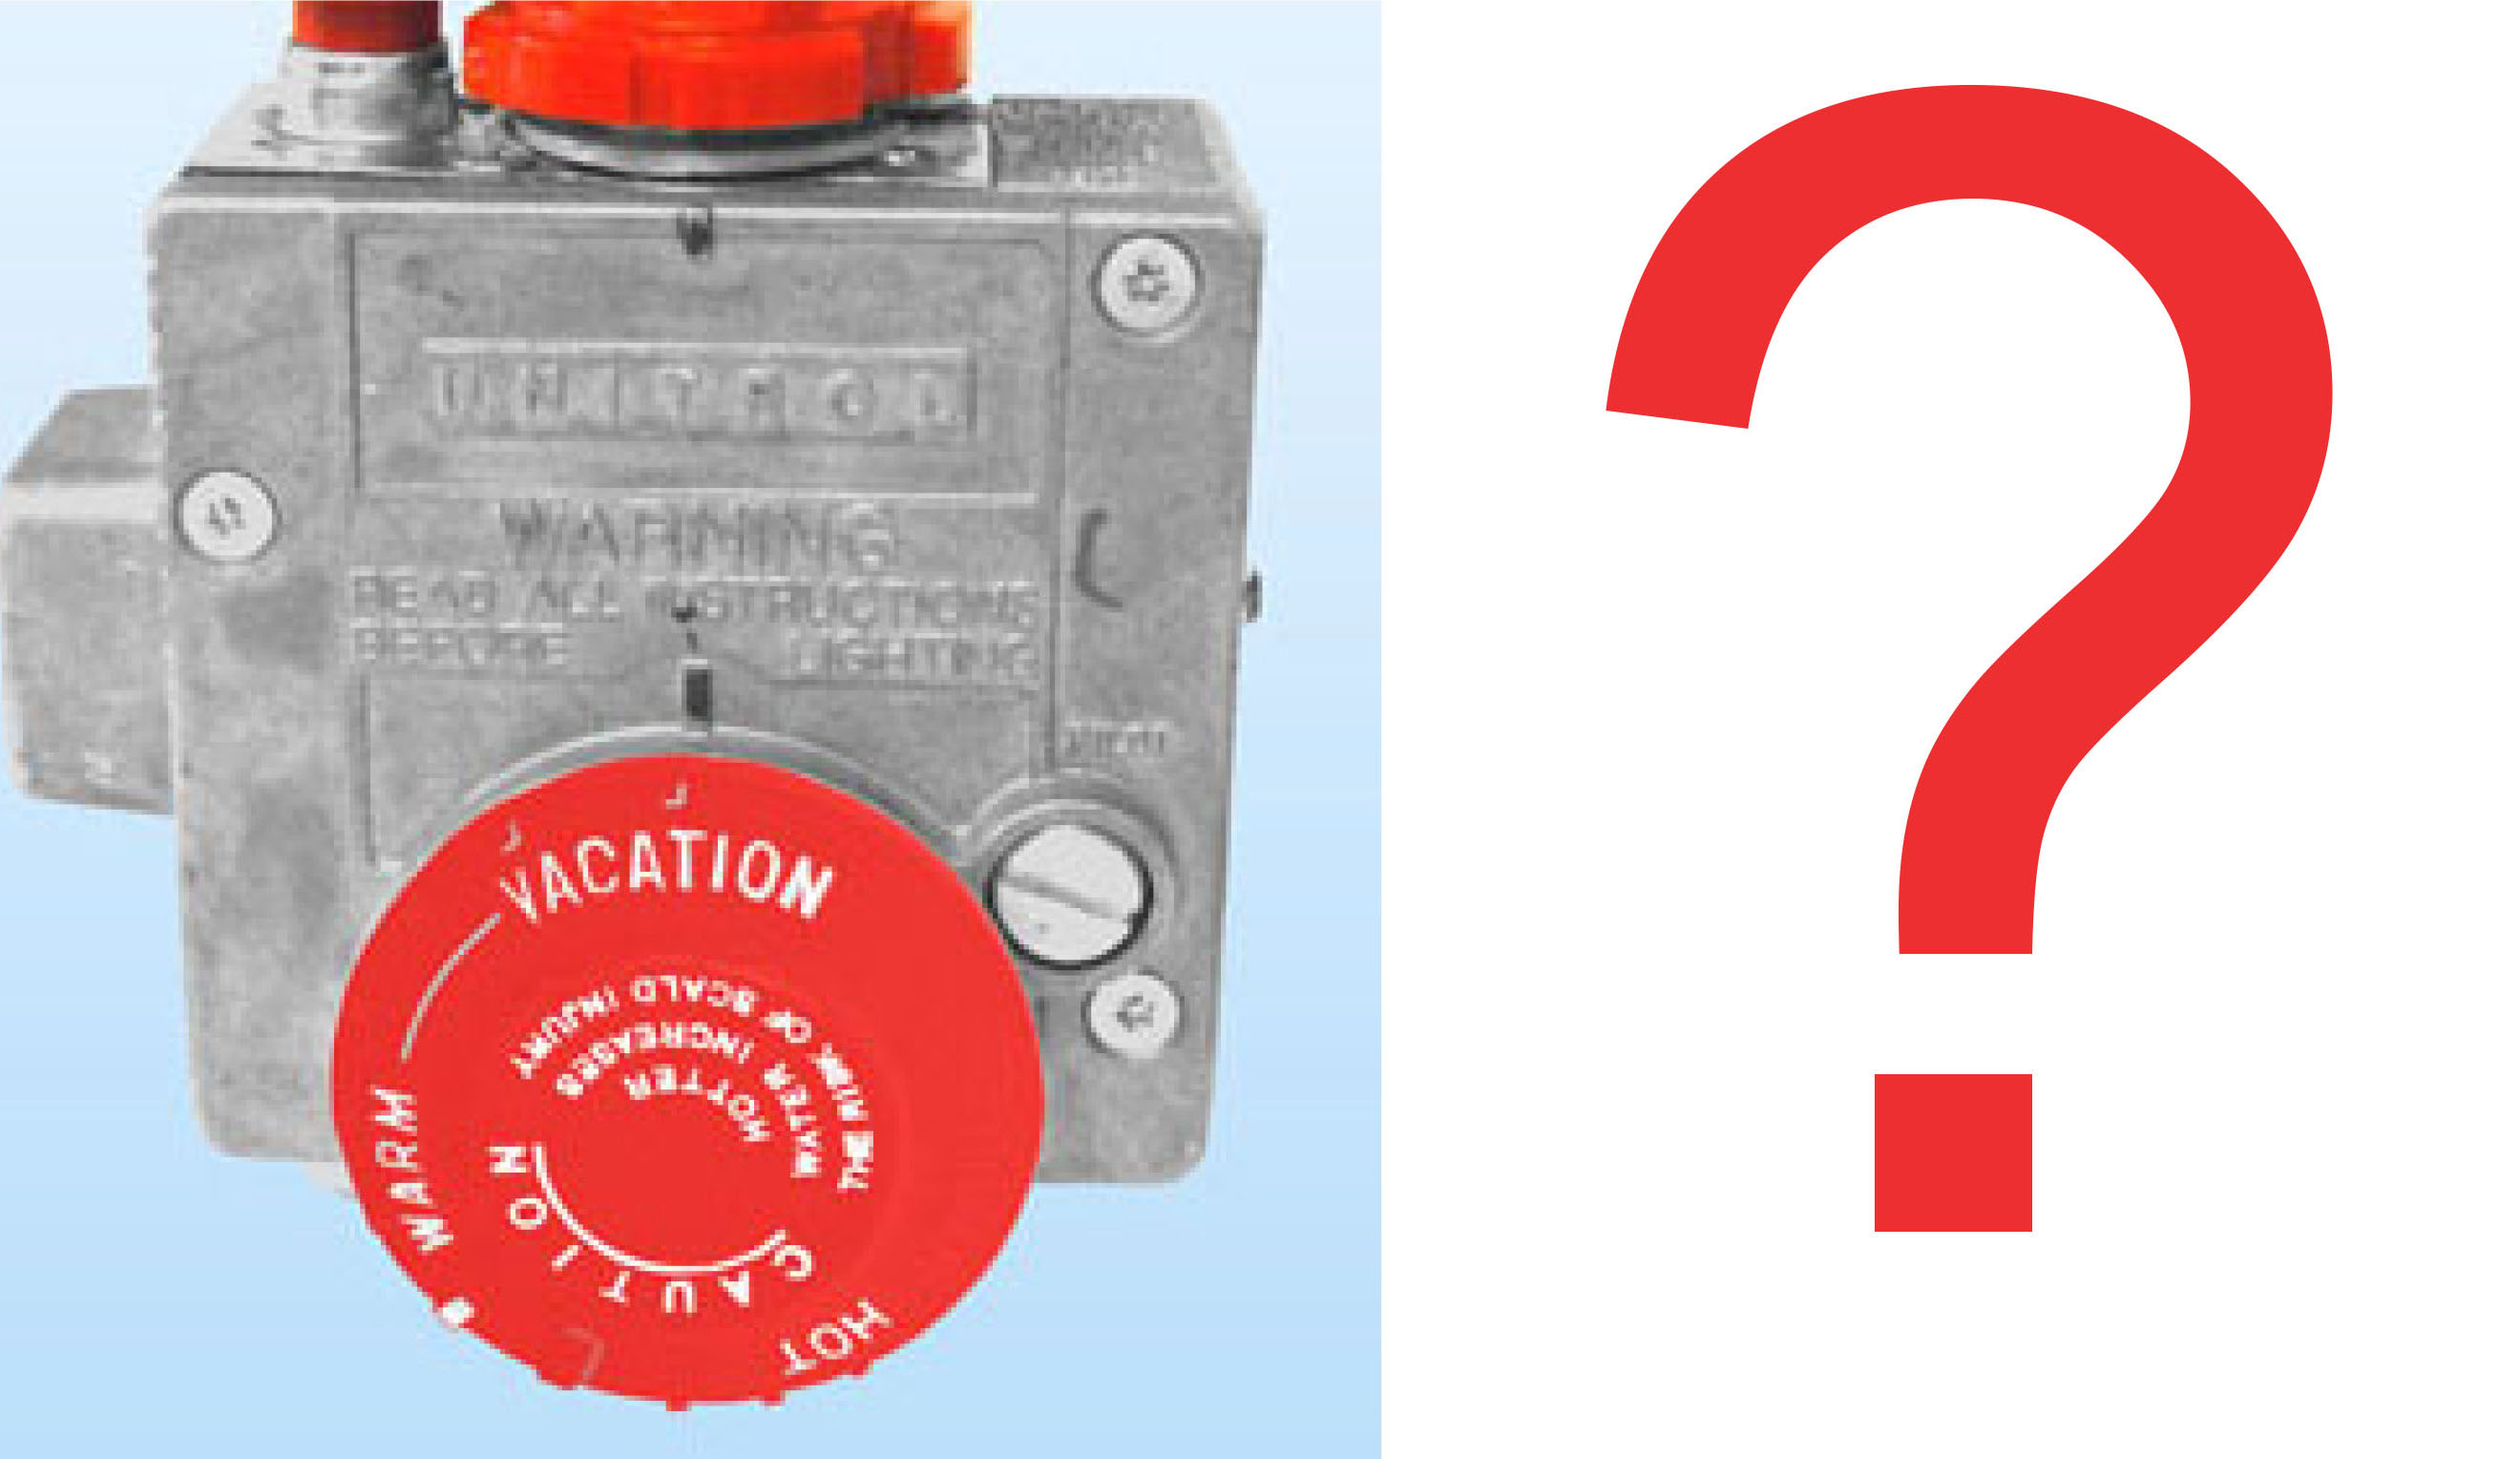 Image of water heater gas valve and question mark